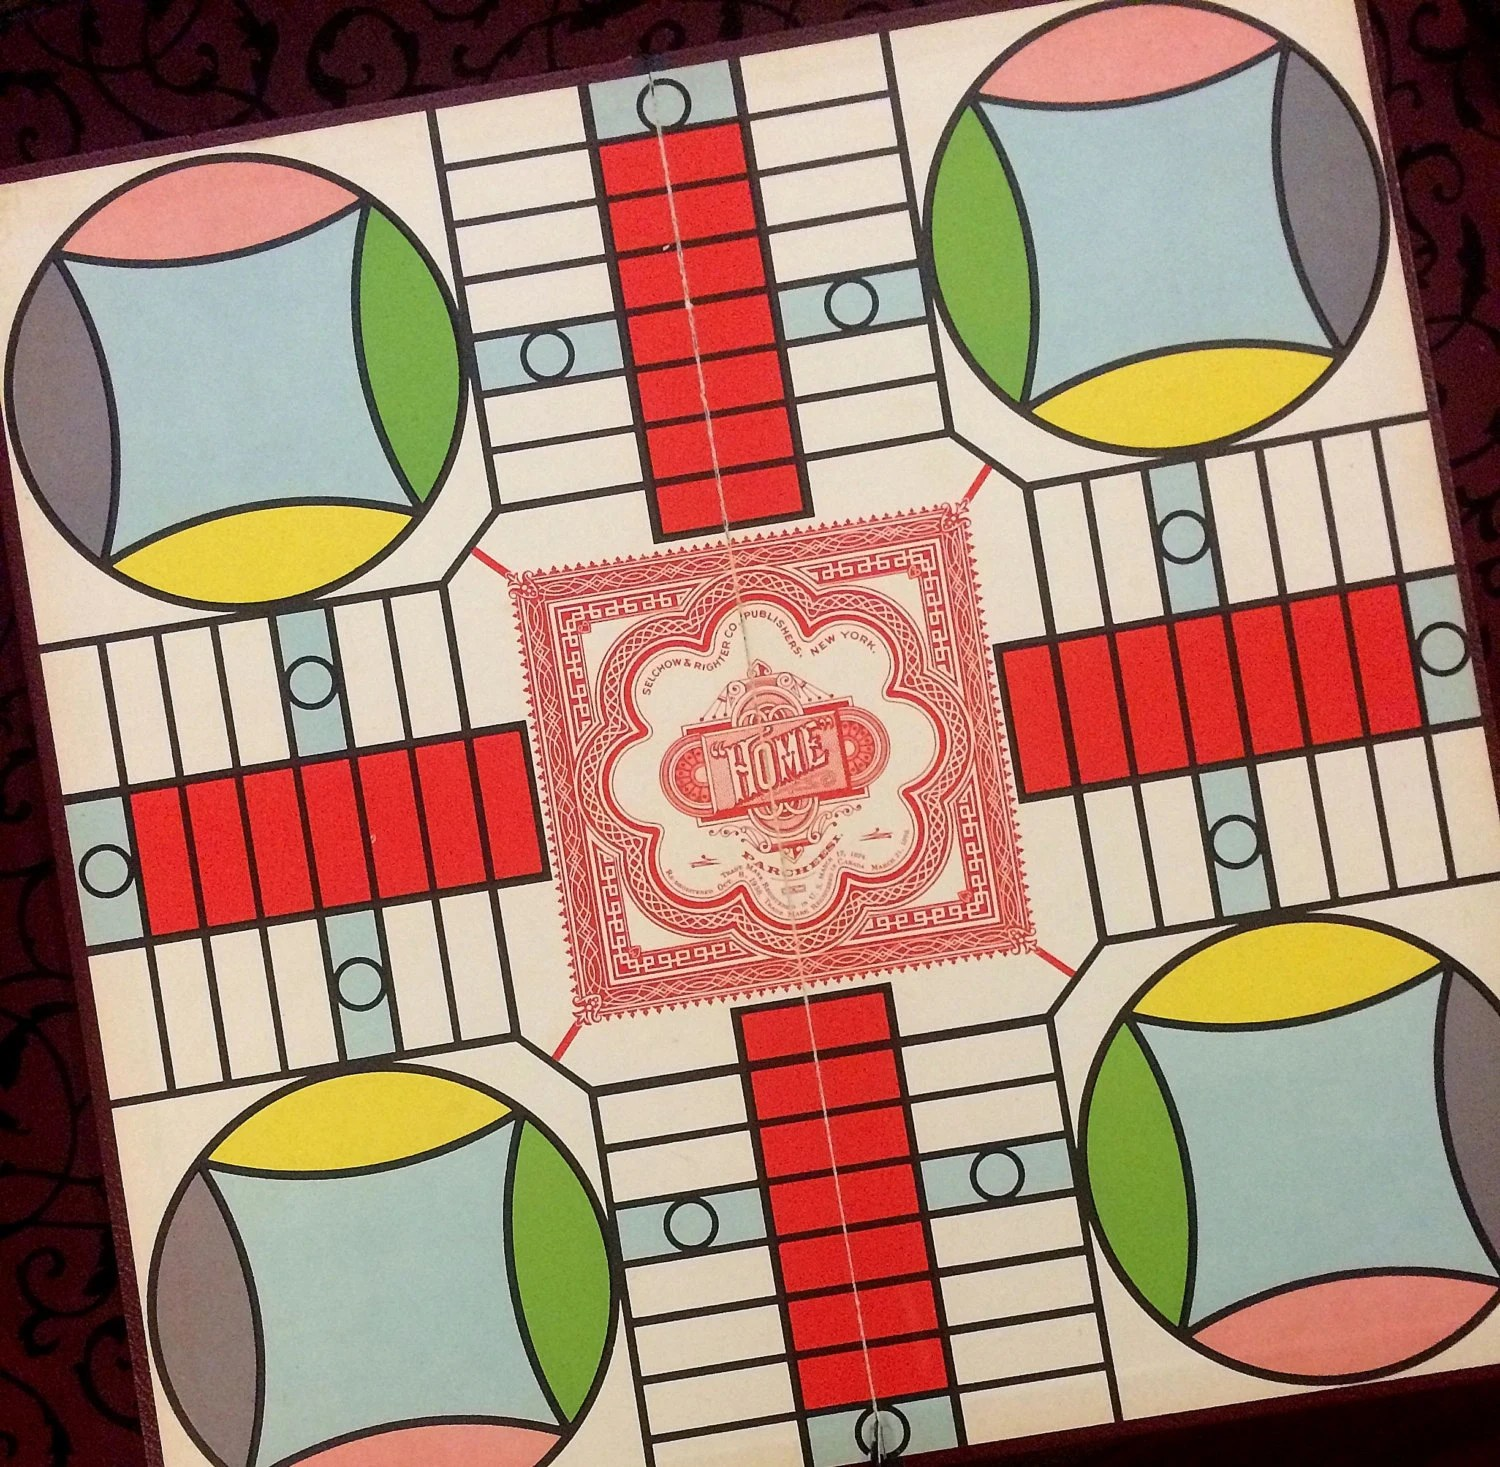 Decorative Game Boards Decorative Vintage Game Board Colorful Graphics Mid Century